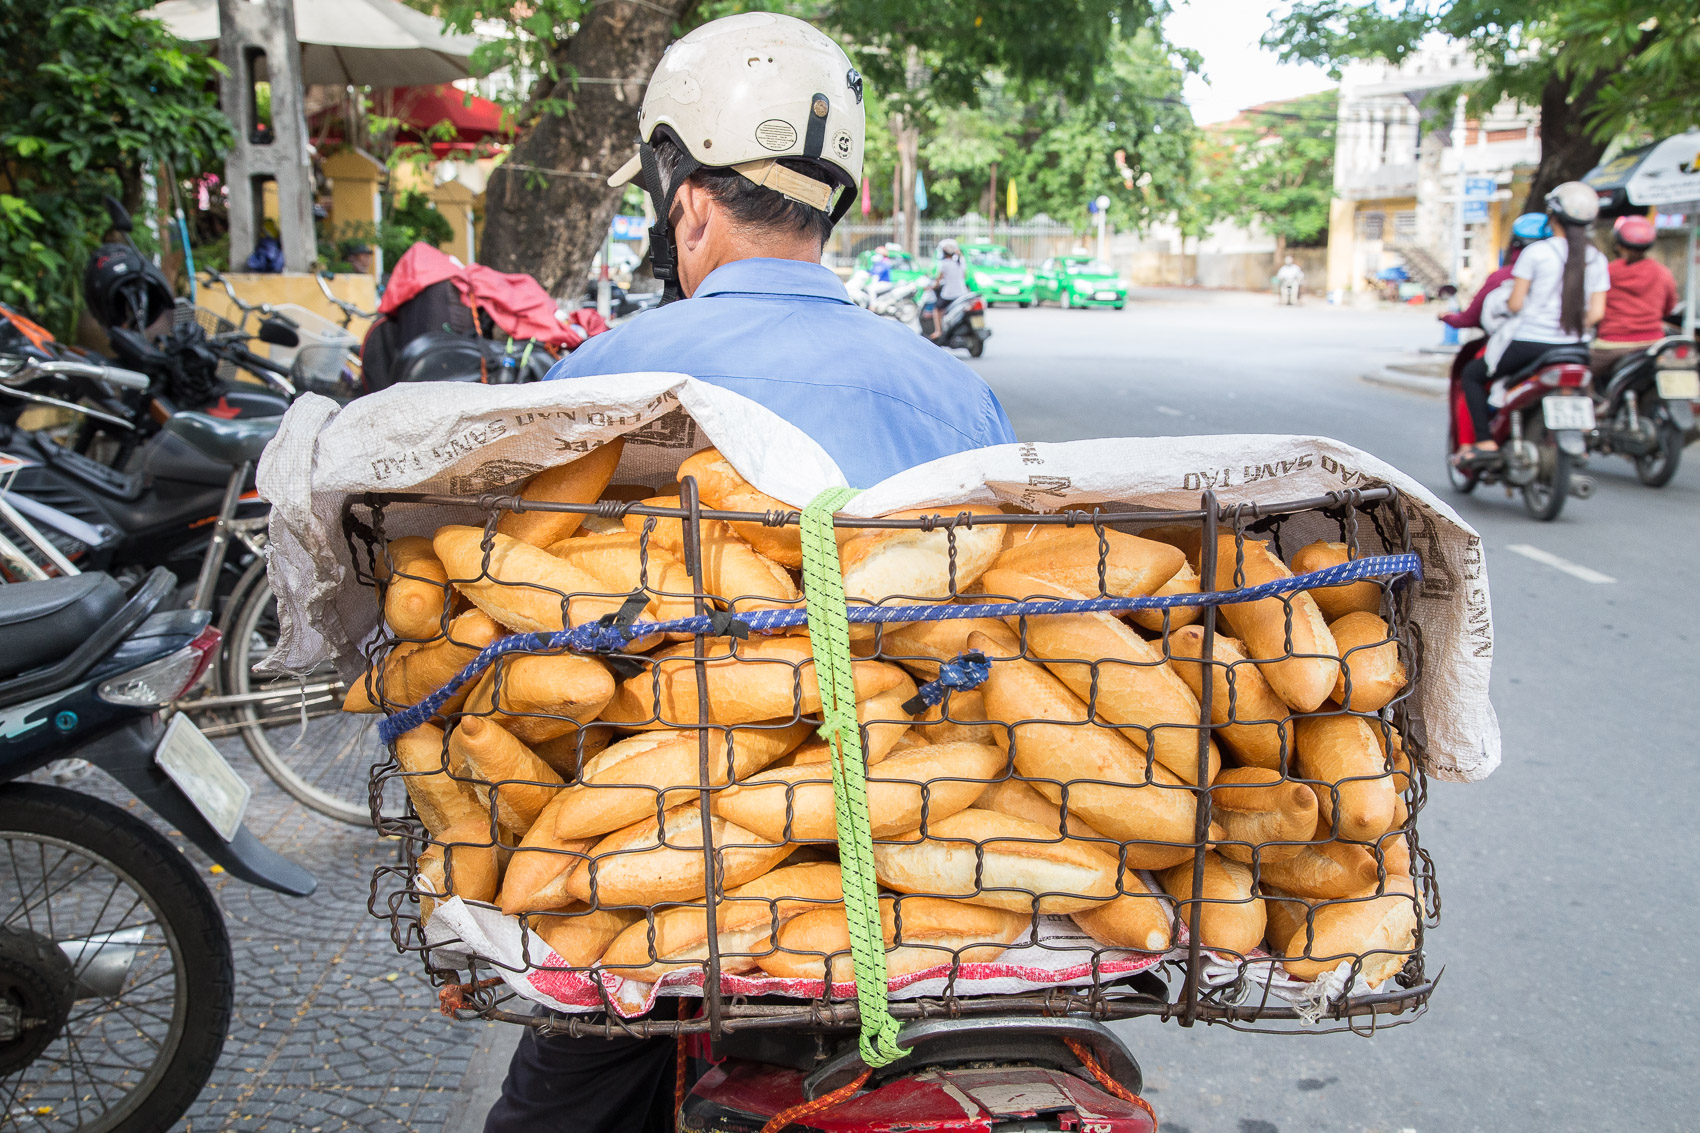 In Vietnam's tropical climate banh mi freshness is paramount. Humidity is a real factor here and bread tends to go stale and rubbery very quickly.